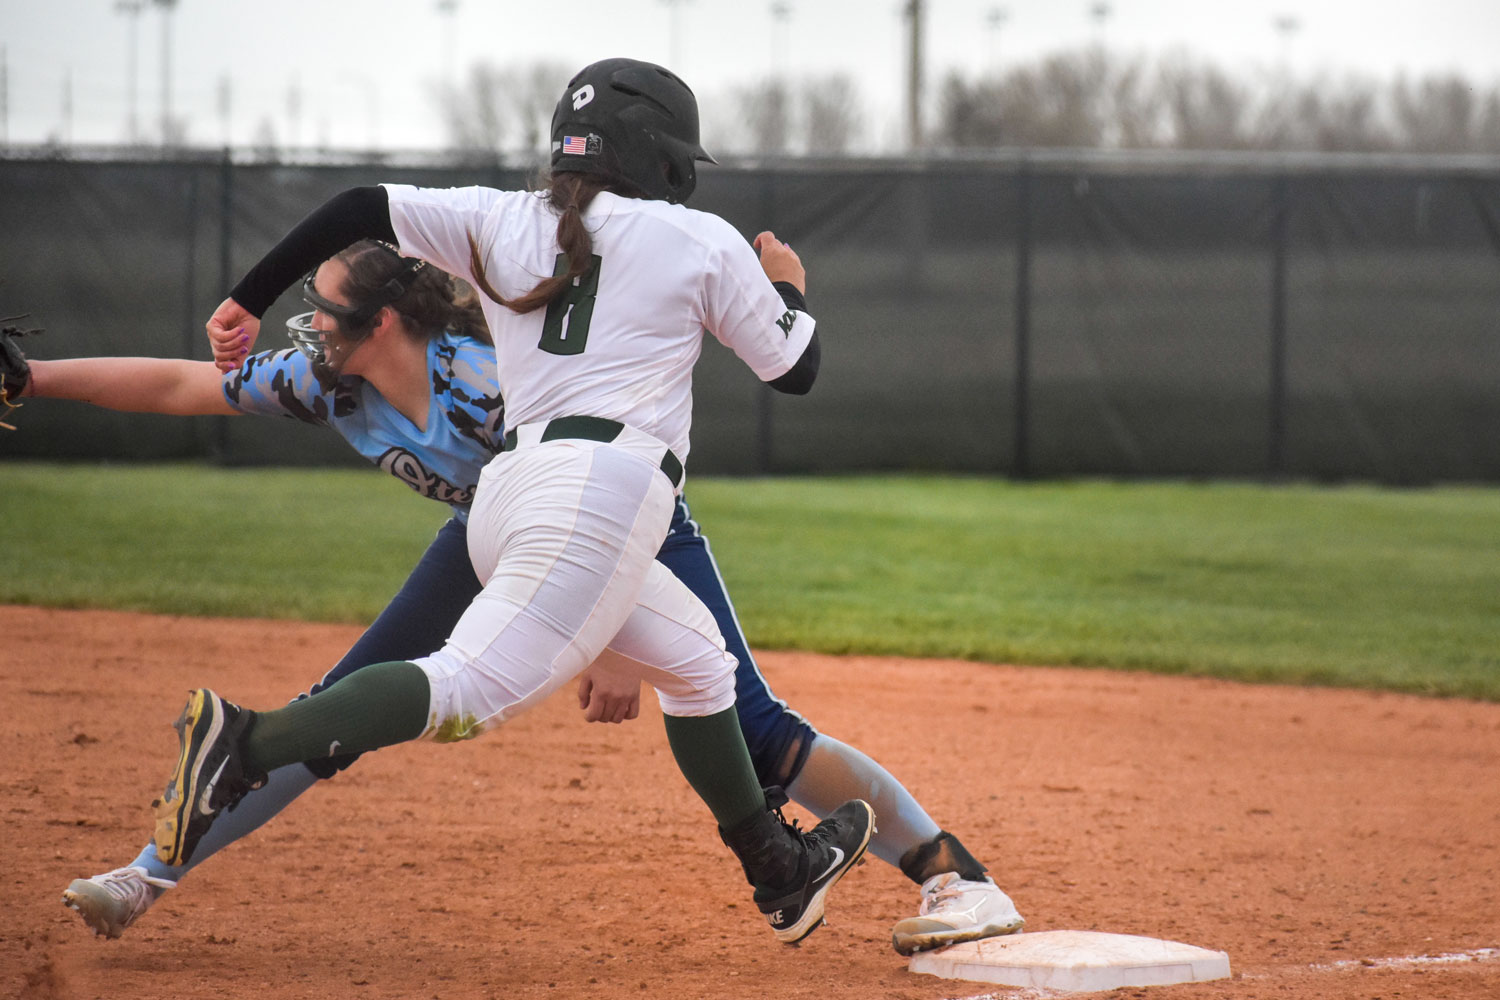 On May 4, Seward County Community Colleges softball team played in the Region VI tournament in Dodge City. The ladies played against Barton and Colby, losing 5-3 to barton and 12-9 to Colby. Seward finished the season  at 14-14 in the Jayhawk West and 18-31 overall.